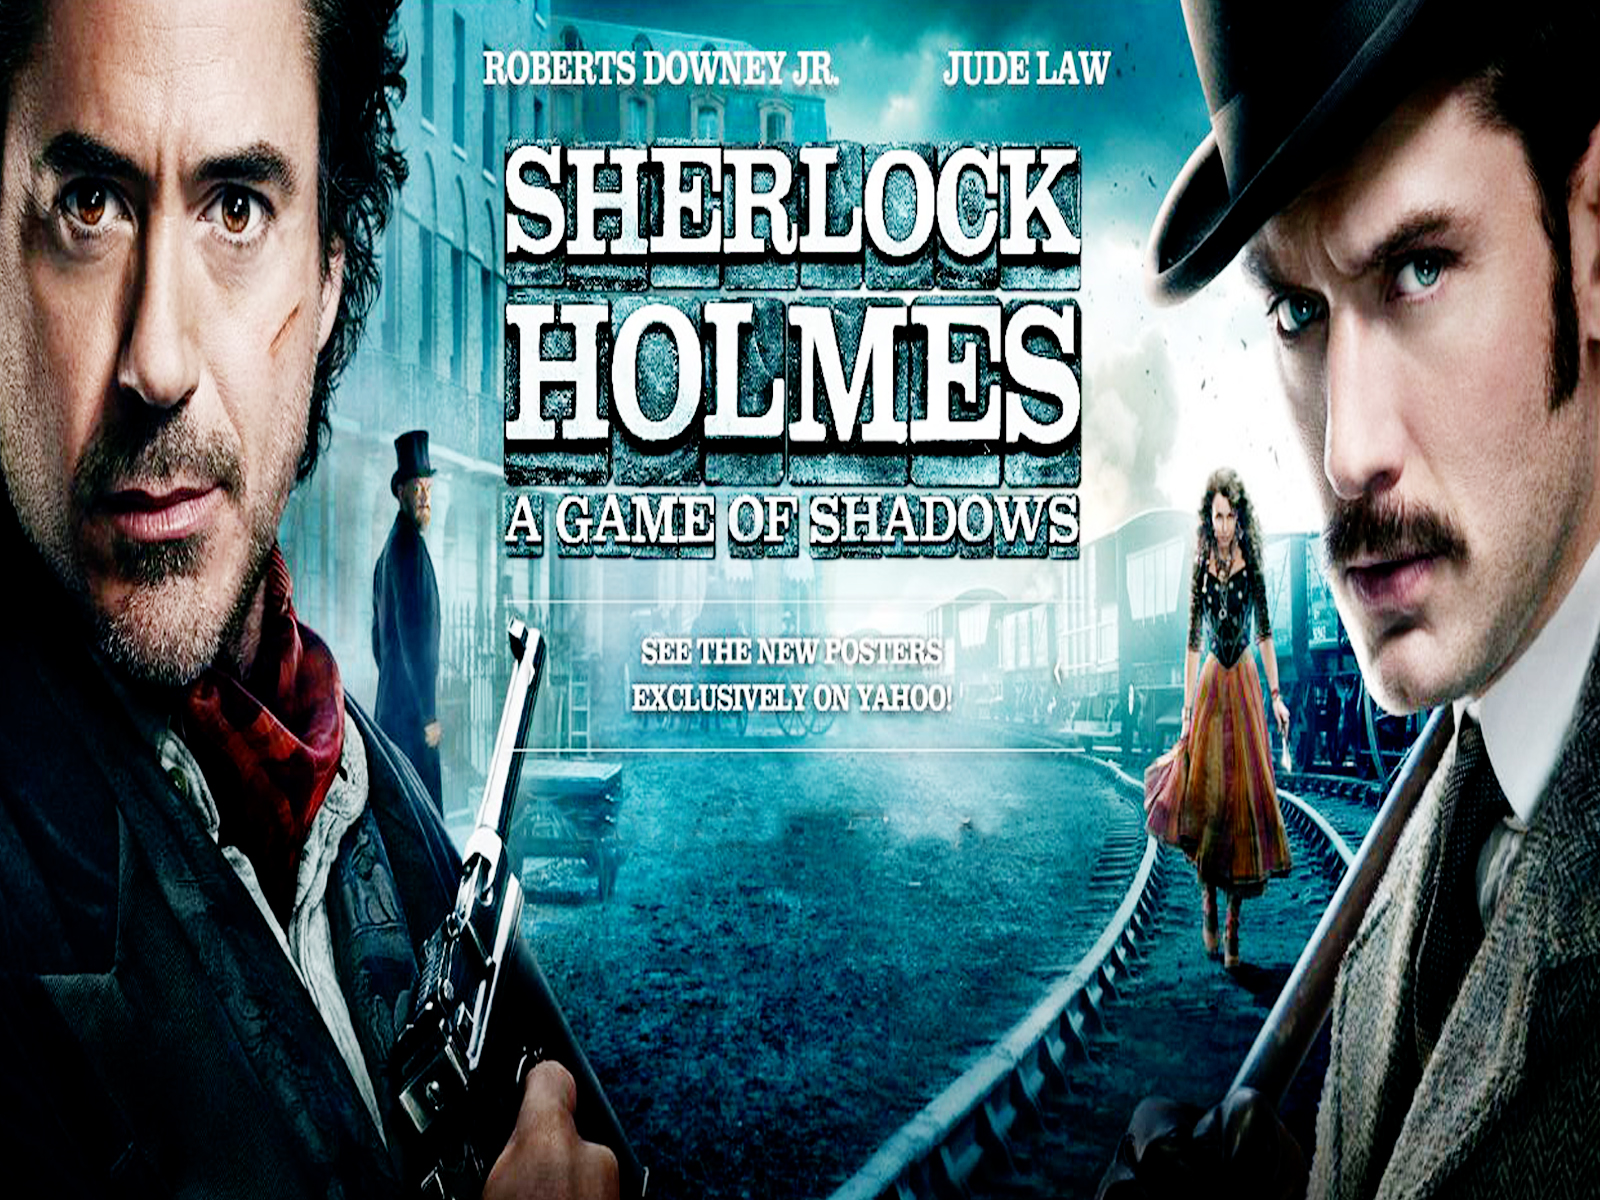 essays sherlock holmes Open document below is an essay on sherlock holmes and auguste dupin- good noses and their companions from anti essays, your source for research papers, essays, and term paper examples.